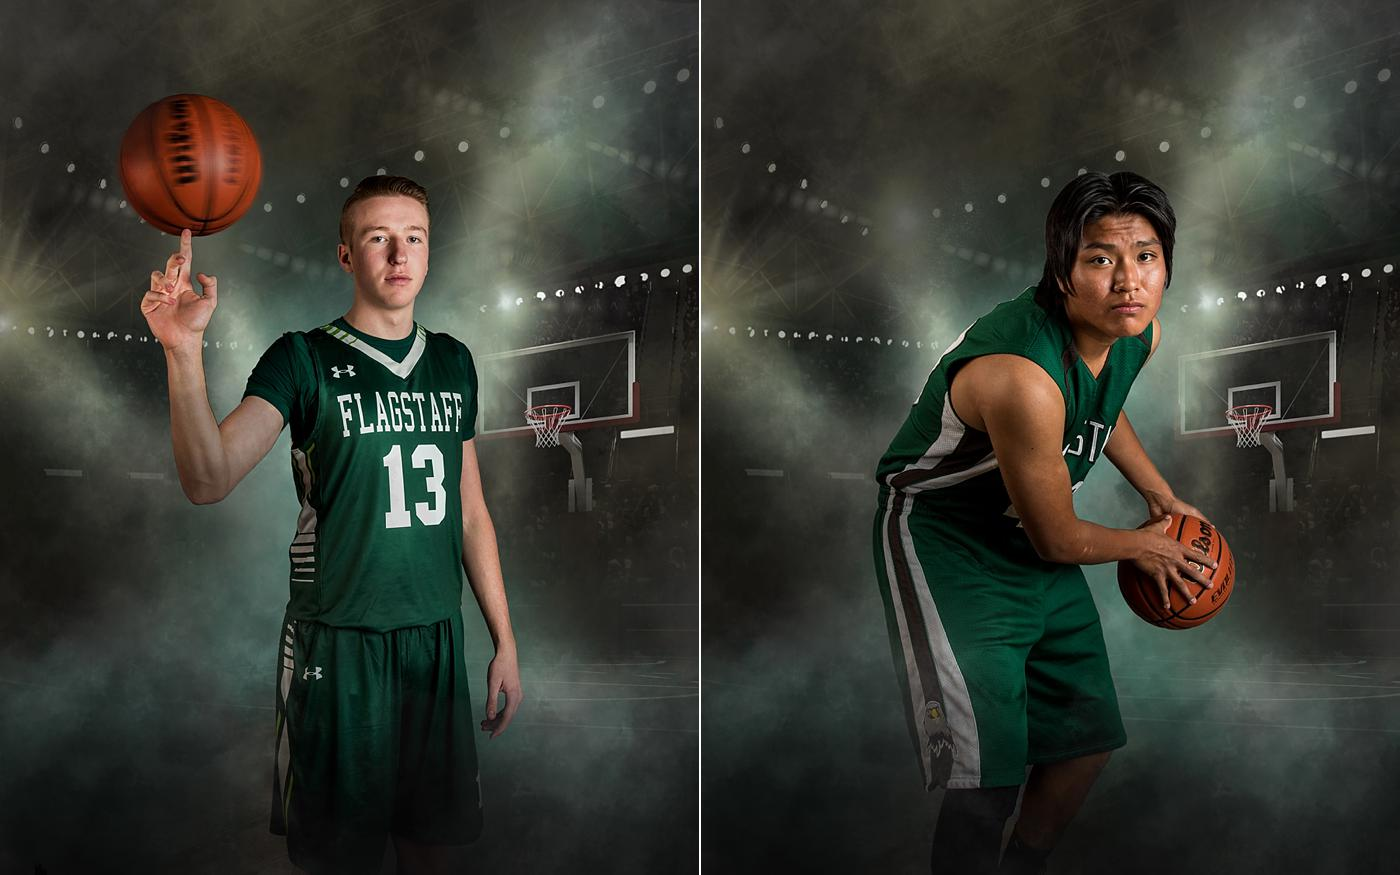 13-V-flagstaff-high-school-basketball-2017ther2studio